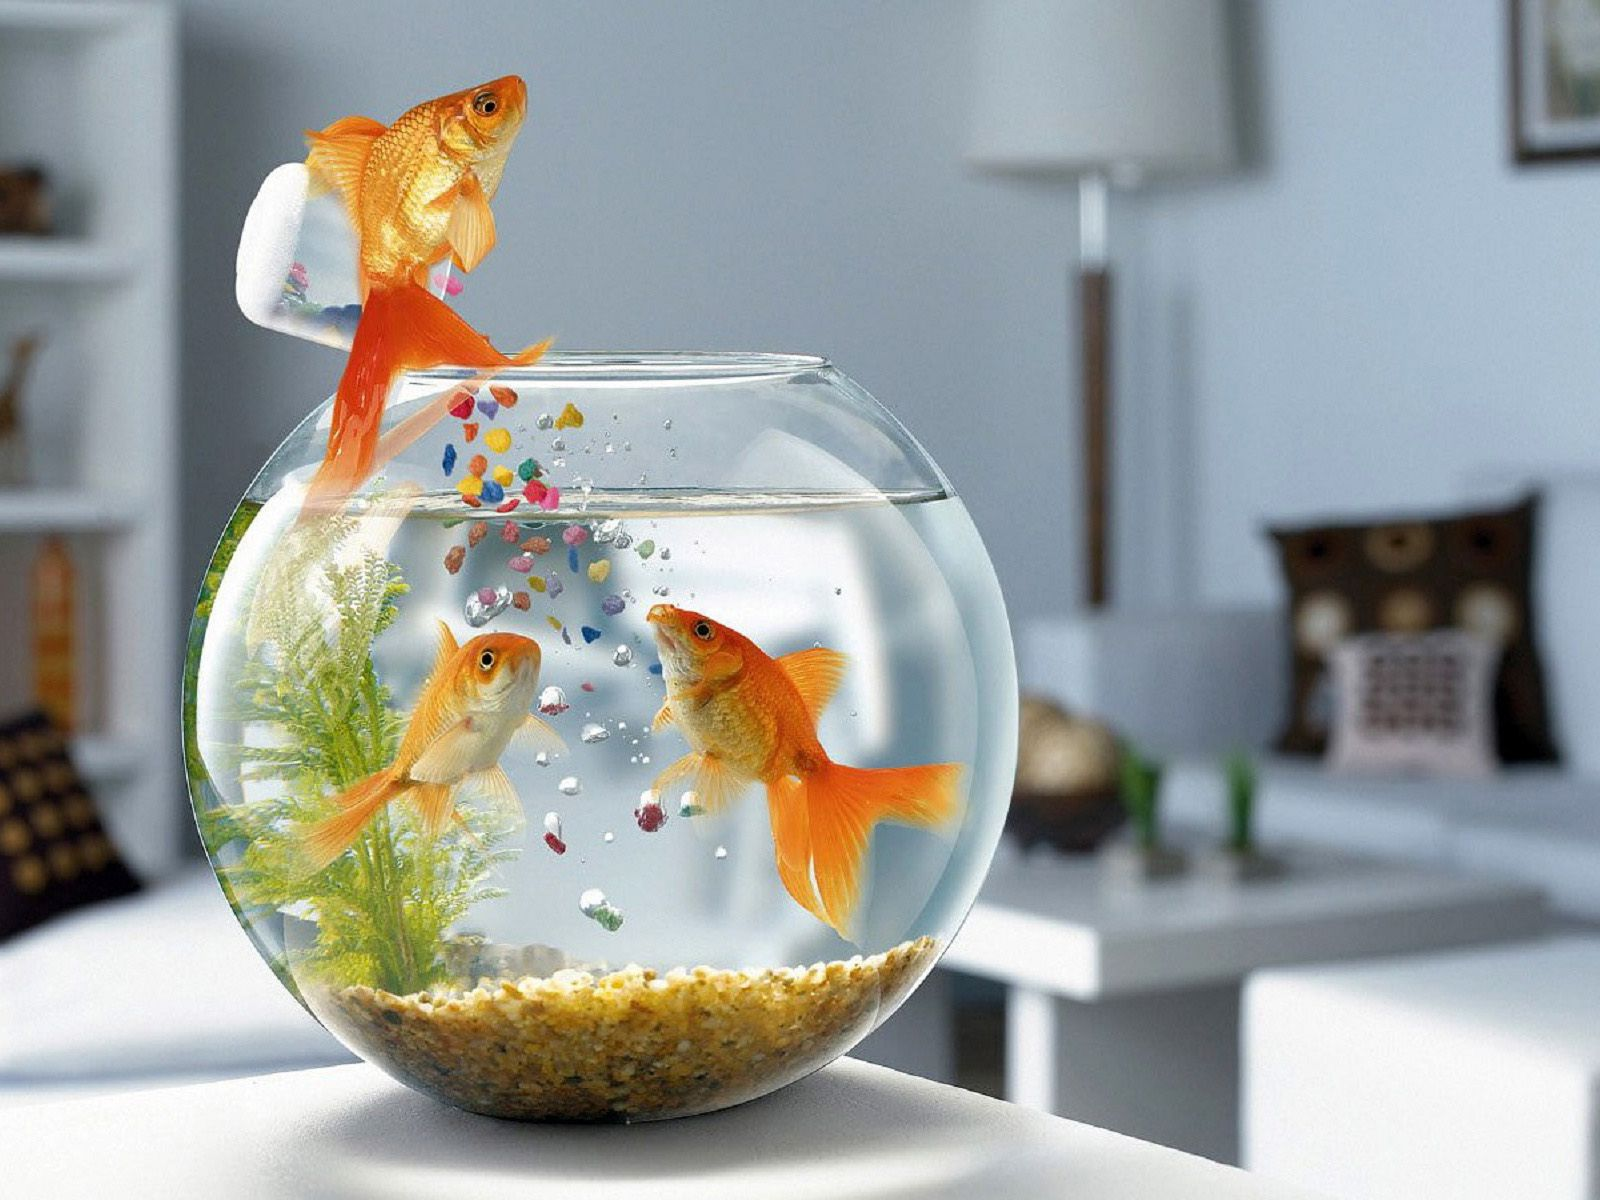 Feeding Time Cool Wallpaper Fish Wallpaper Funny Wallpaper Pictures